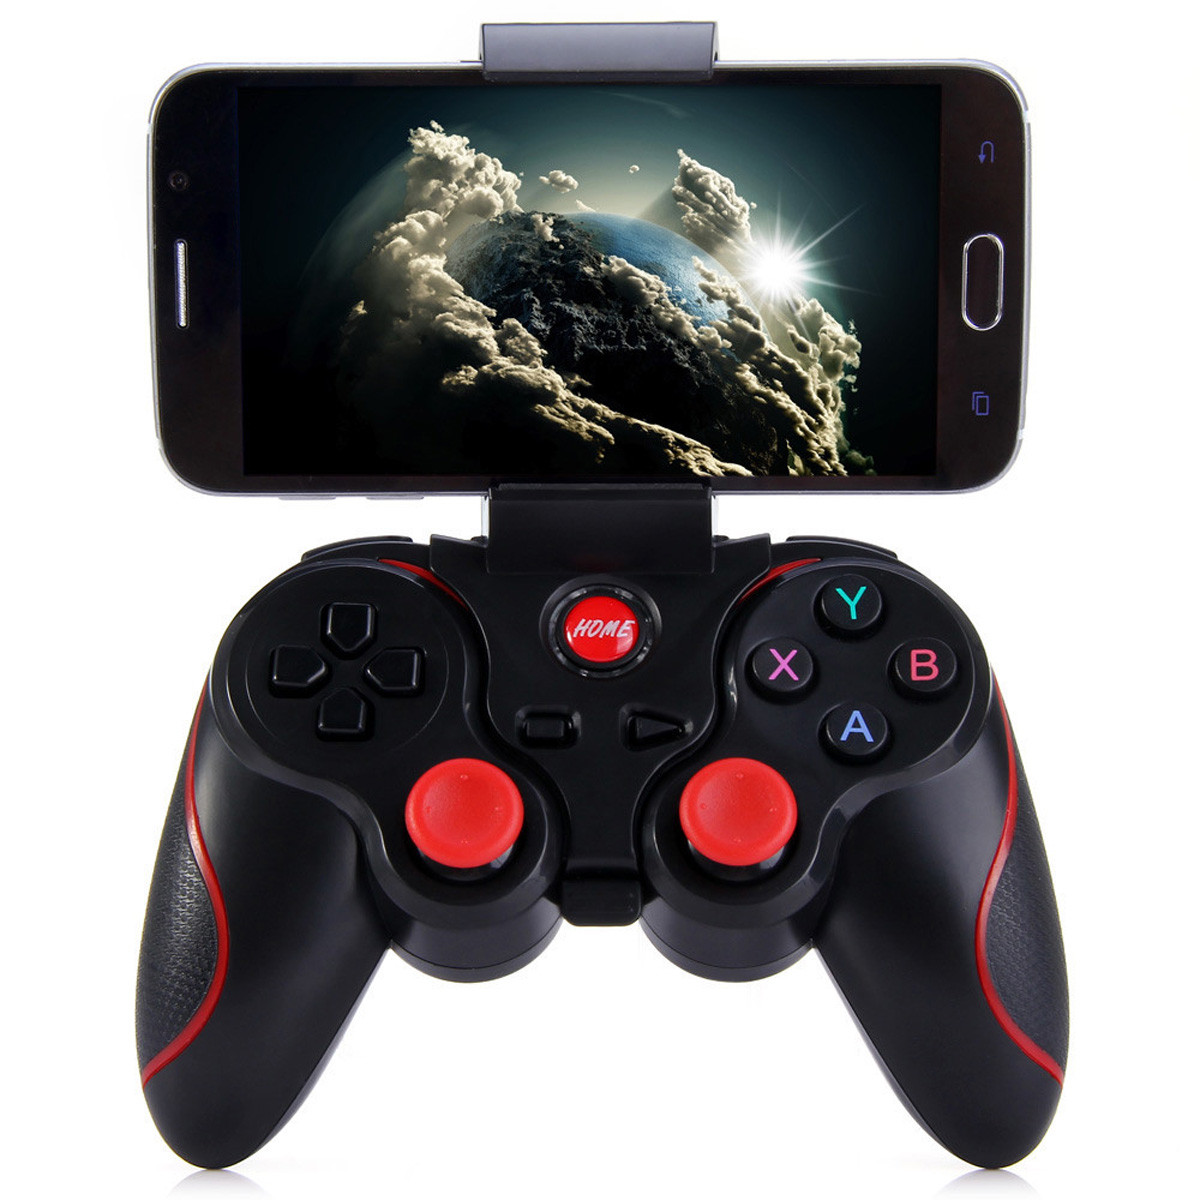 T3 Game Controller Wireless Joystick Bluetooth 3.0 Android Gamepad Gaming Remote Controle for PC Tablet Xiaomi Huawei Smartphone image